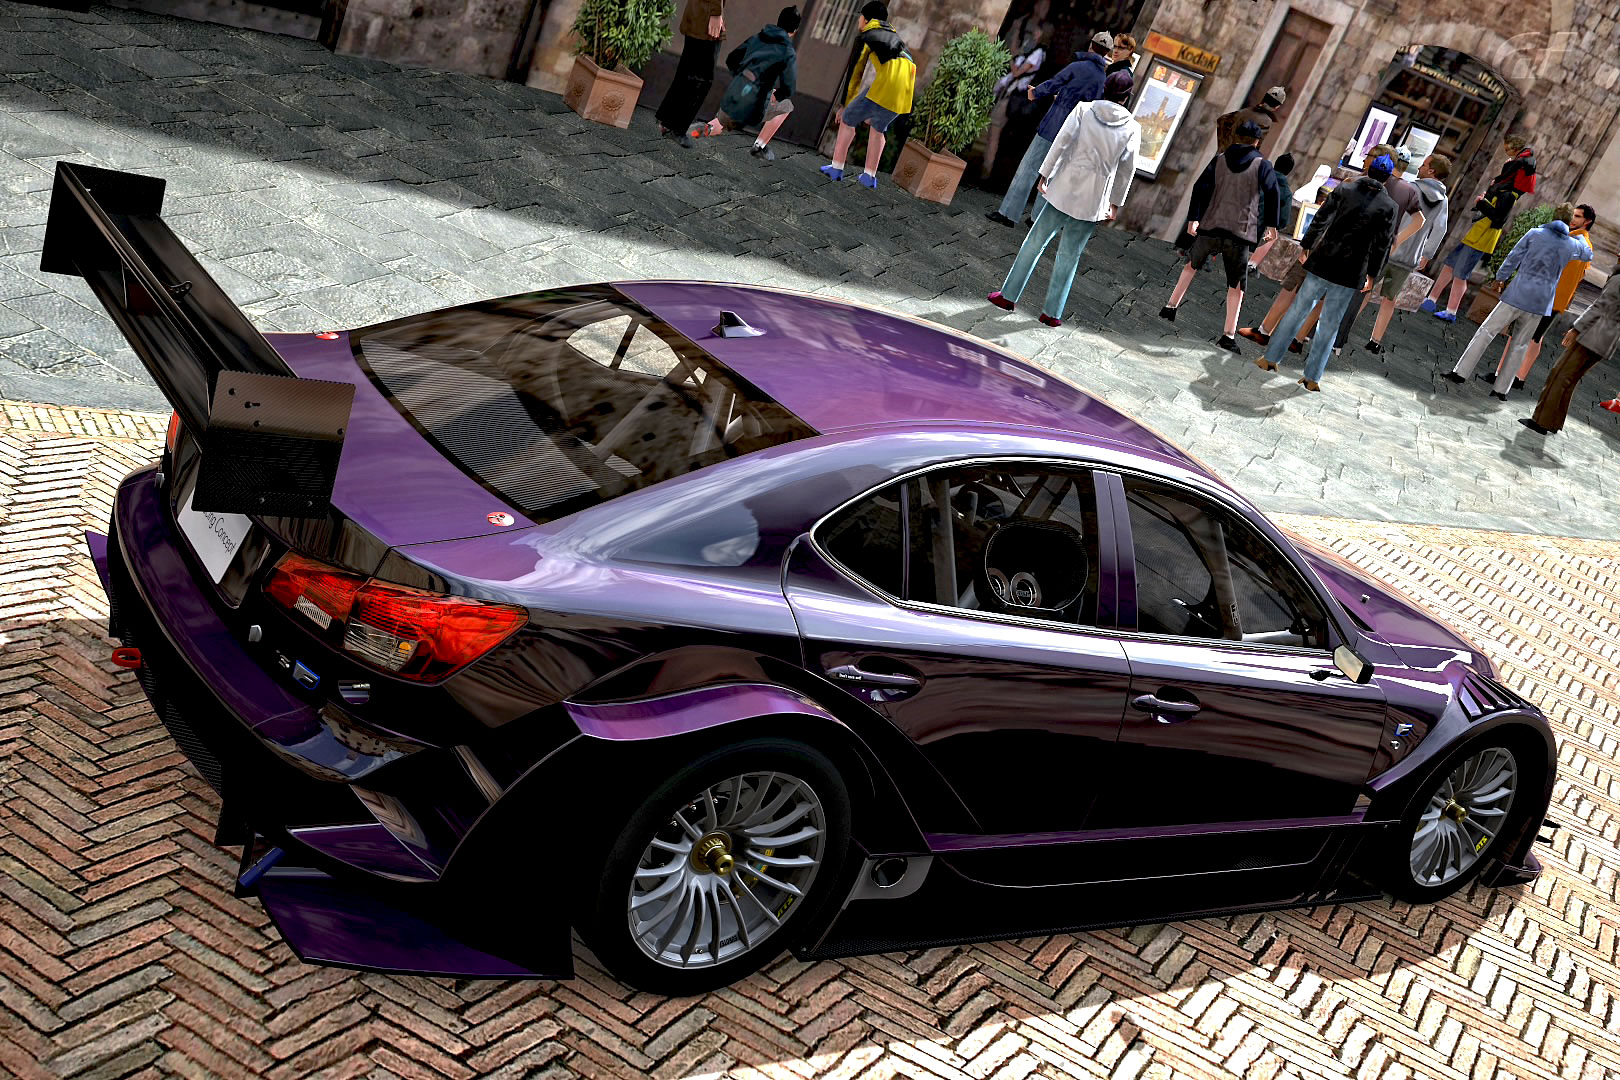 lexus_isf_concept_o8_purple_gt5_by_whendt-d4vpjxs